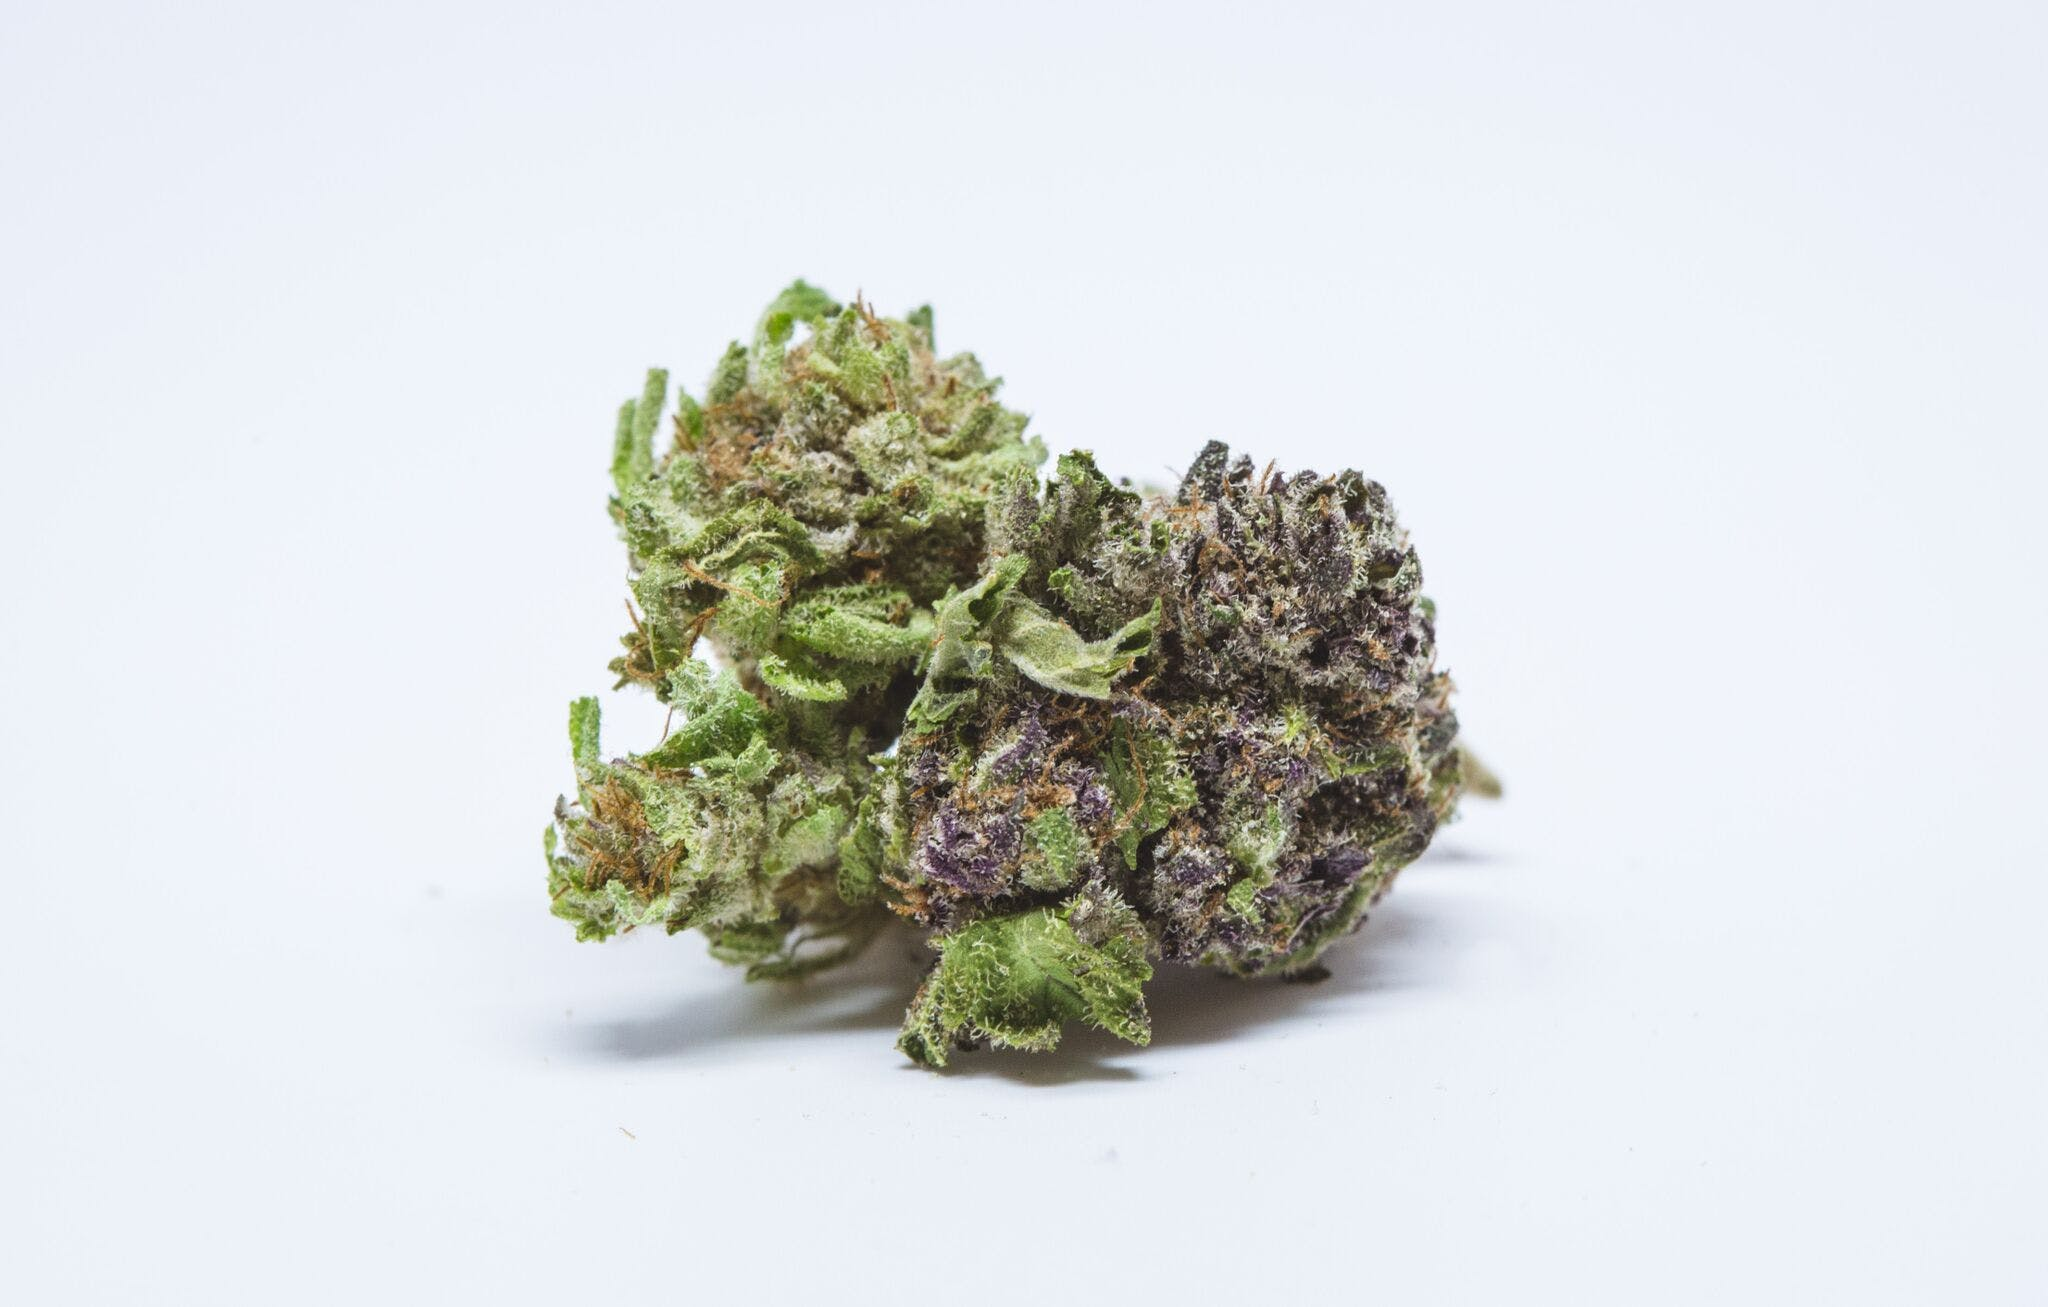 Grape Ape Marijuana Strain Congress Blocks Recreational Marijuana Sales In Washington, D.C.